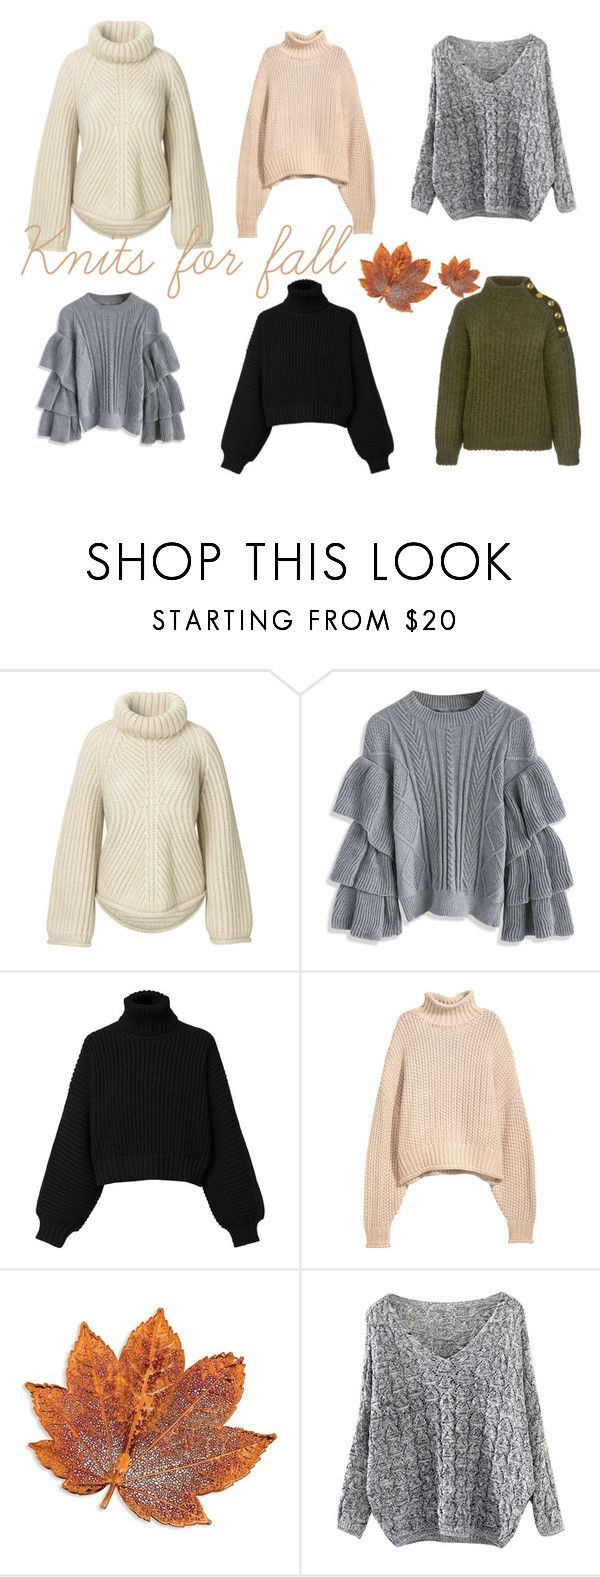 """Knits for fall"" by idahedbom on Polyvore featuring Chicwish, Diesel and Boutique Moschino"